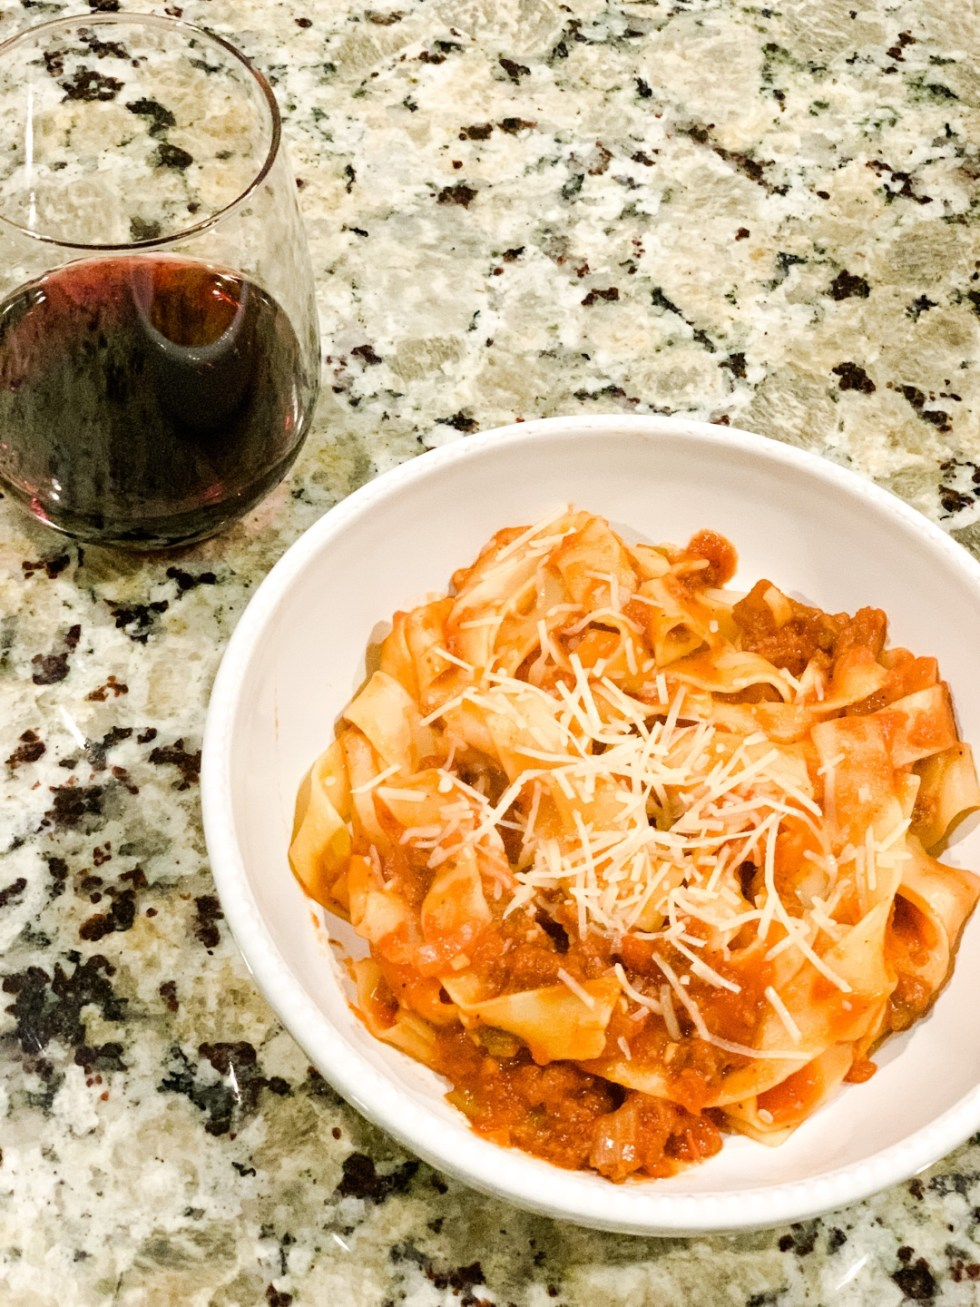 7 Recipes I Have Tried During Quarantine - I'm Fixin' To - @mbg0112 | Easy Recipes for Two by popular North Carolina lifestyle blog, I'm Fixin' To: image of a glass of red wine and some pasta in a white ceramic bowl.